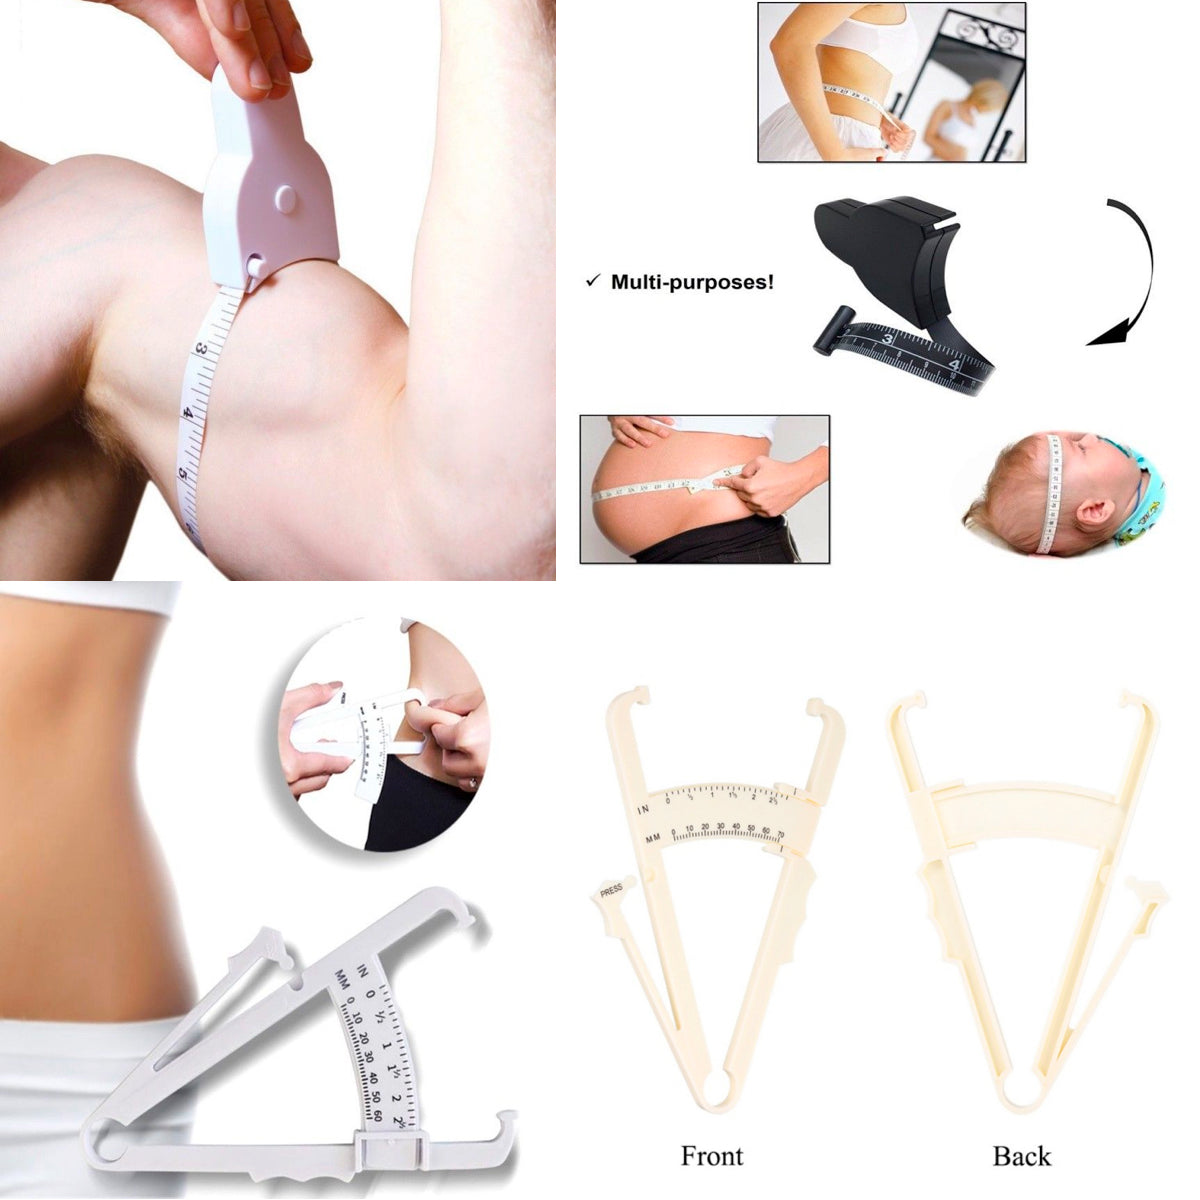 2-Piece Set: Body Fat Caliper & Measuring Tape